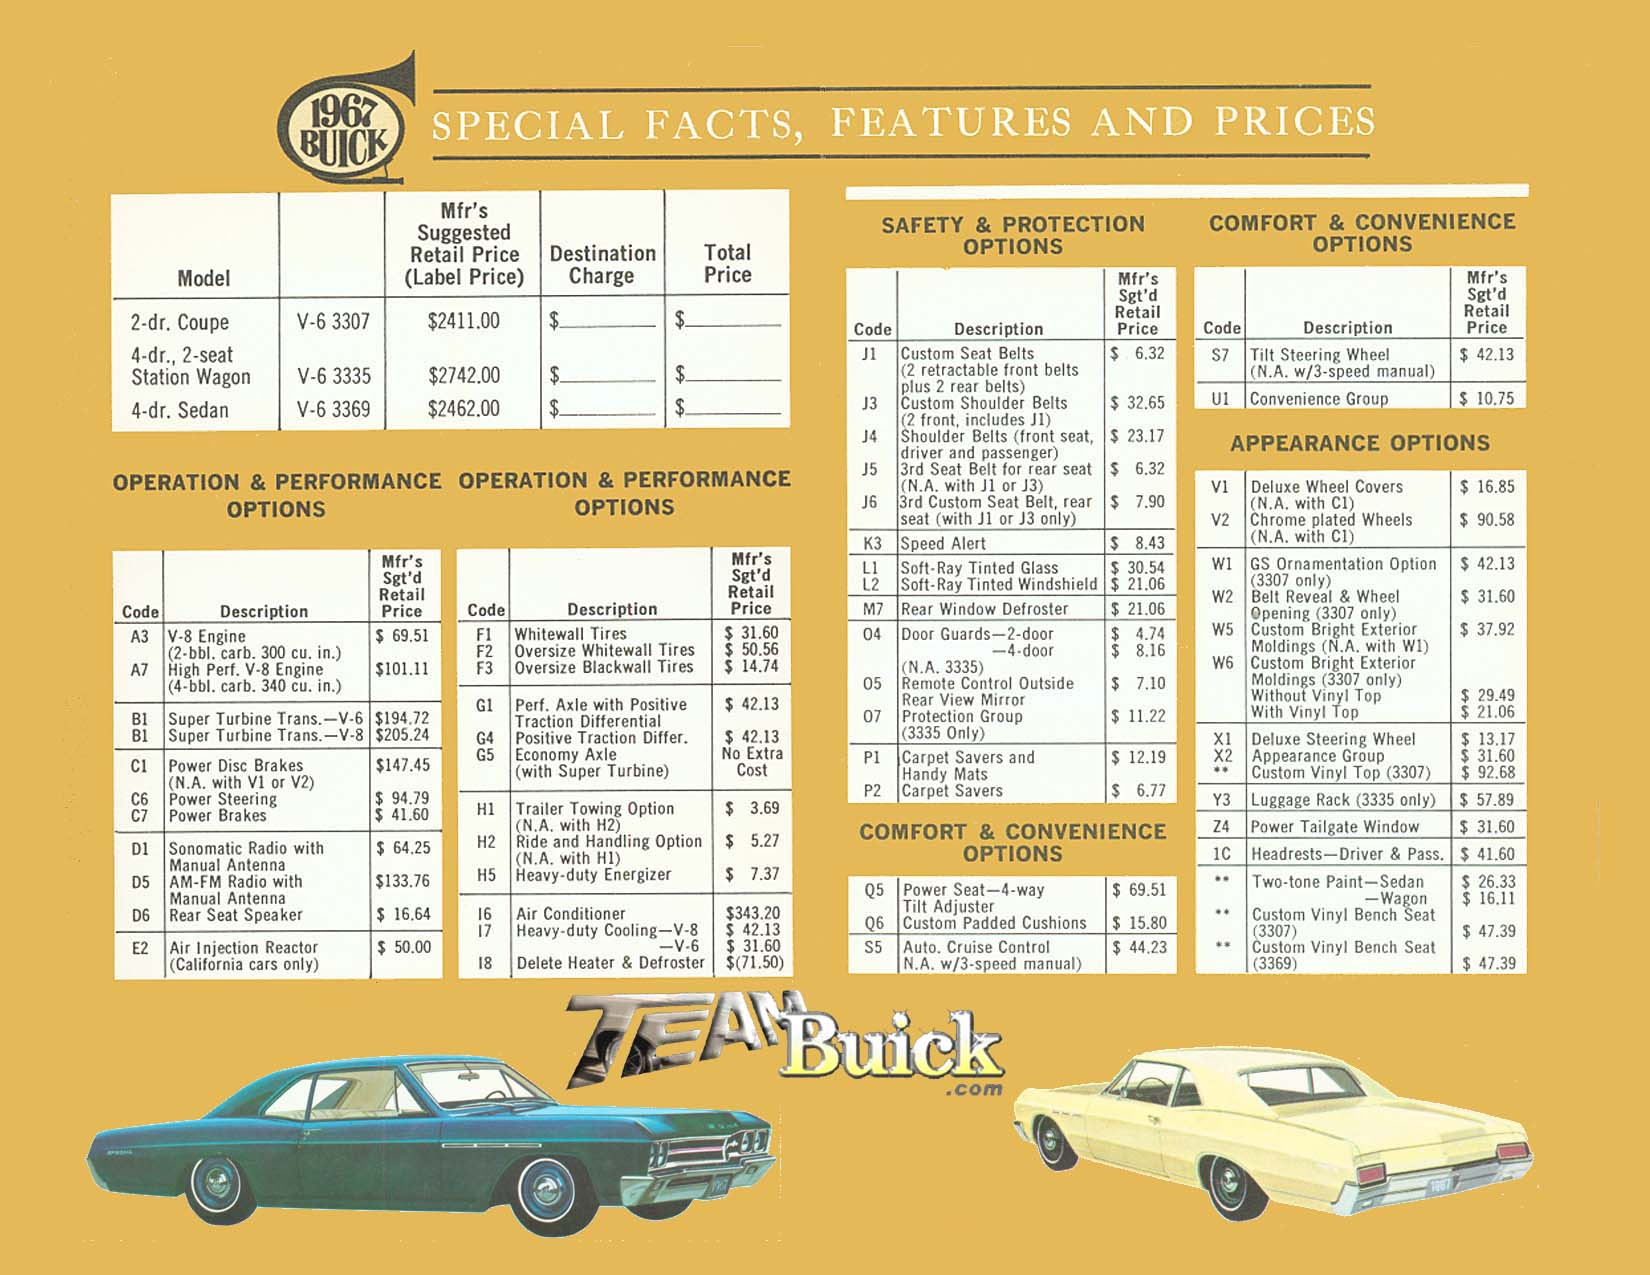 1967 Buick Special Opions and Codes